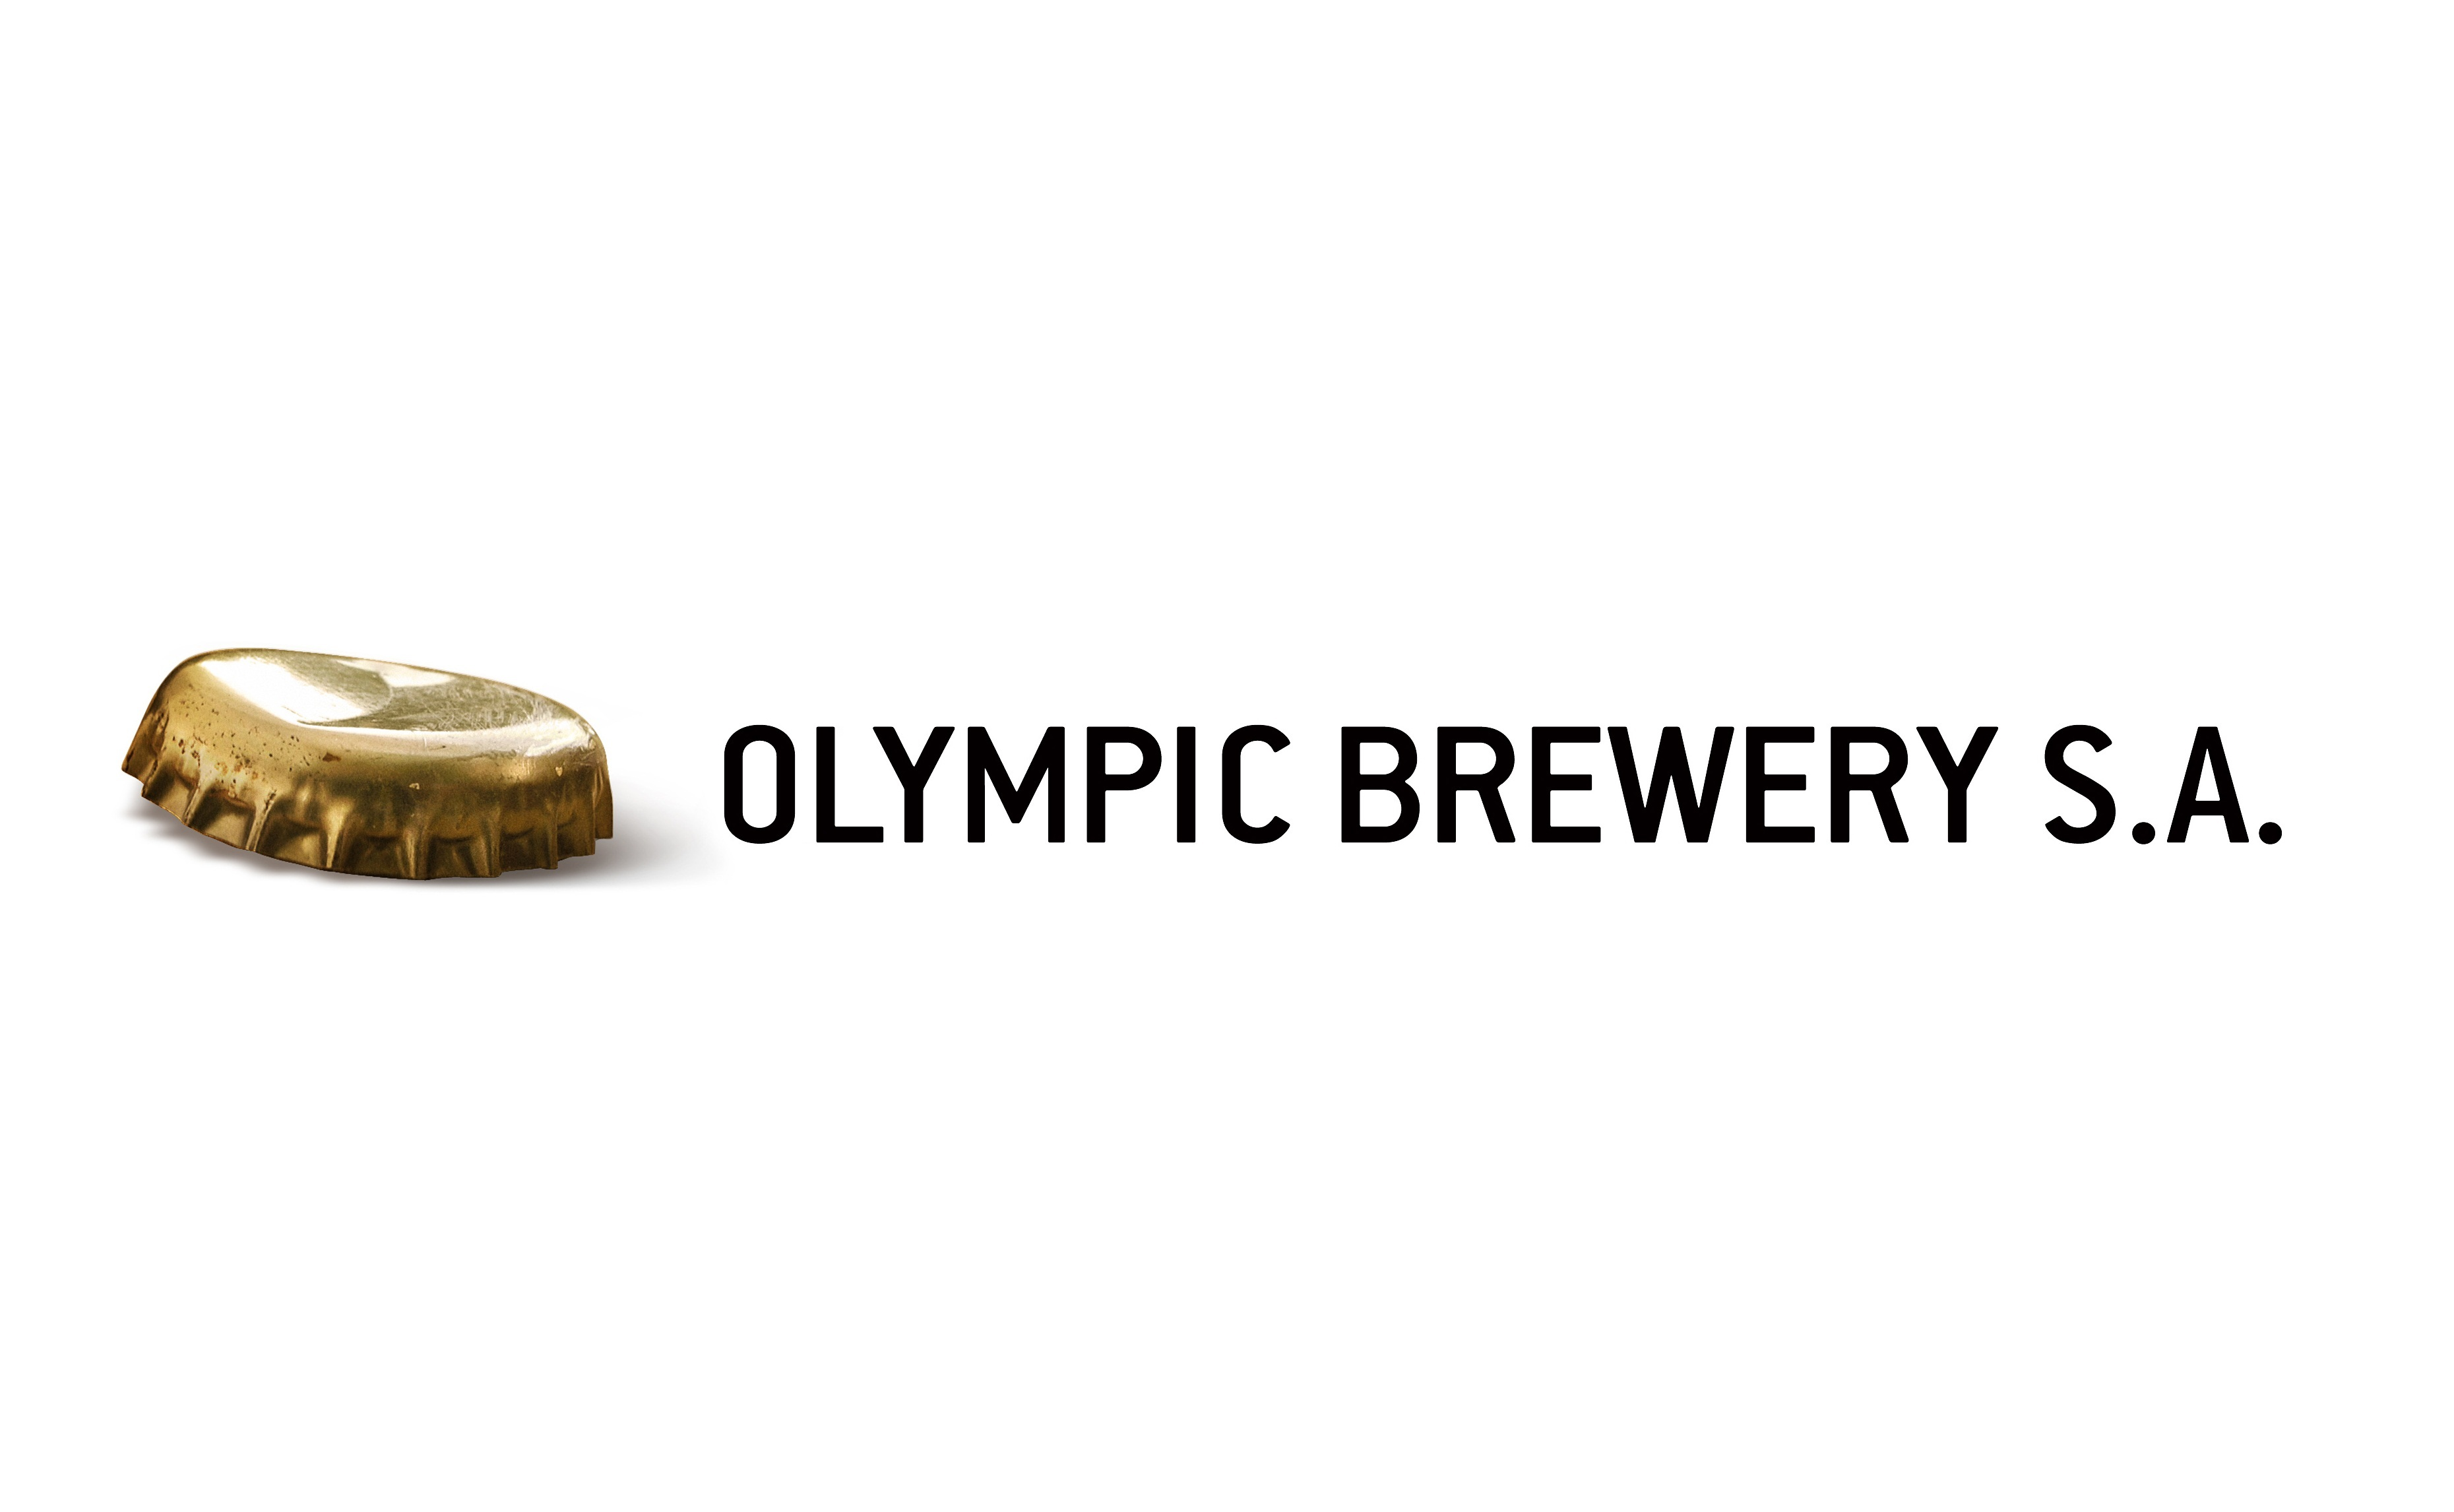 Olympic Brewery S.A. – Part of Carlsberg group